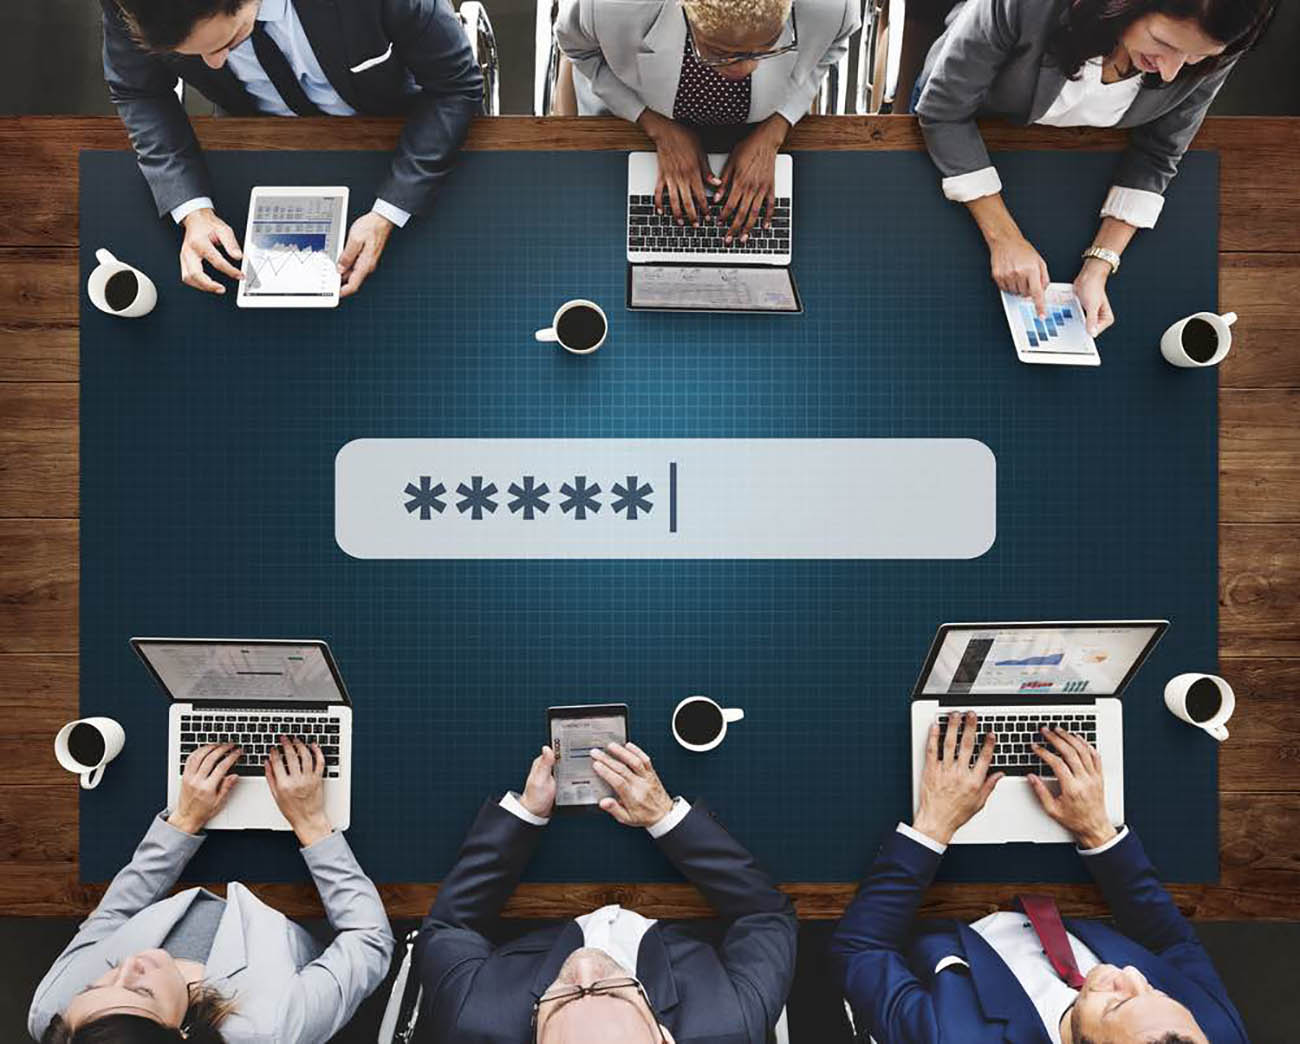 executives_sitting_around_a_table_navigating_digital_devices